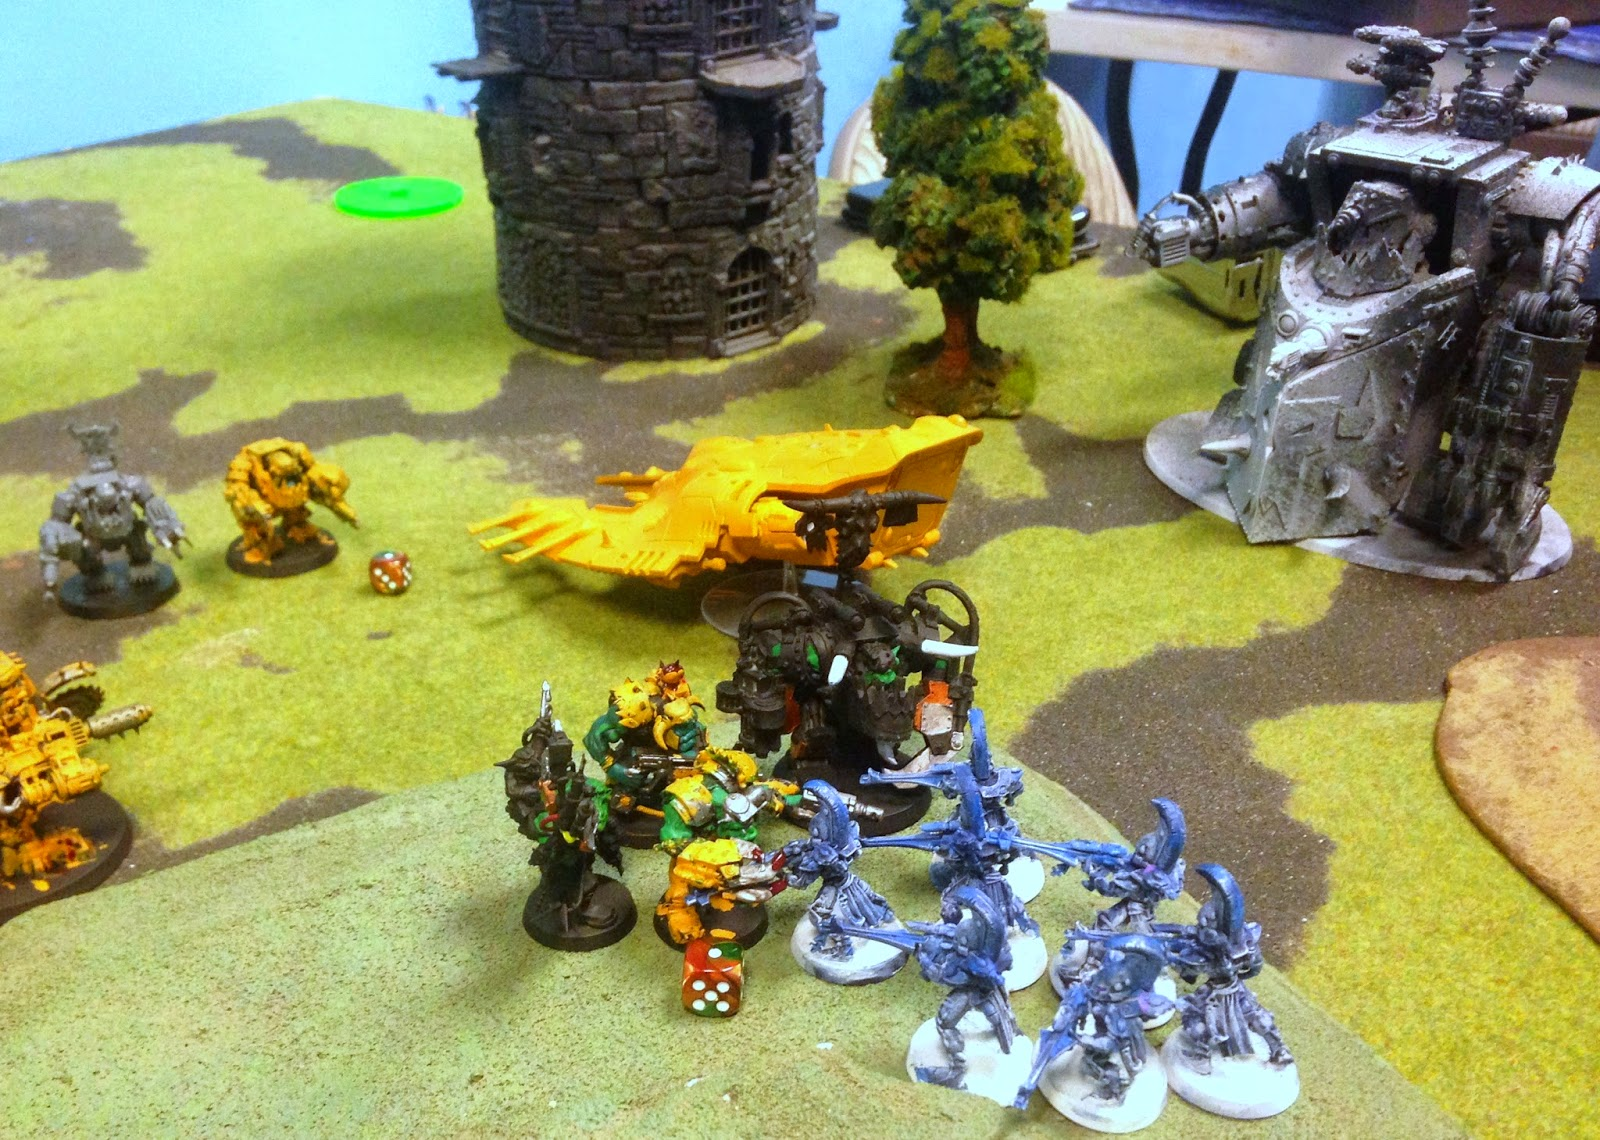 Ghazghkull Thraka in close combat, Orks fighting Eldar, Warhammer 40K, Battle Gaming One